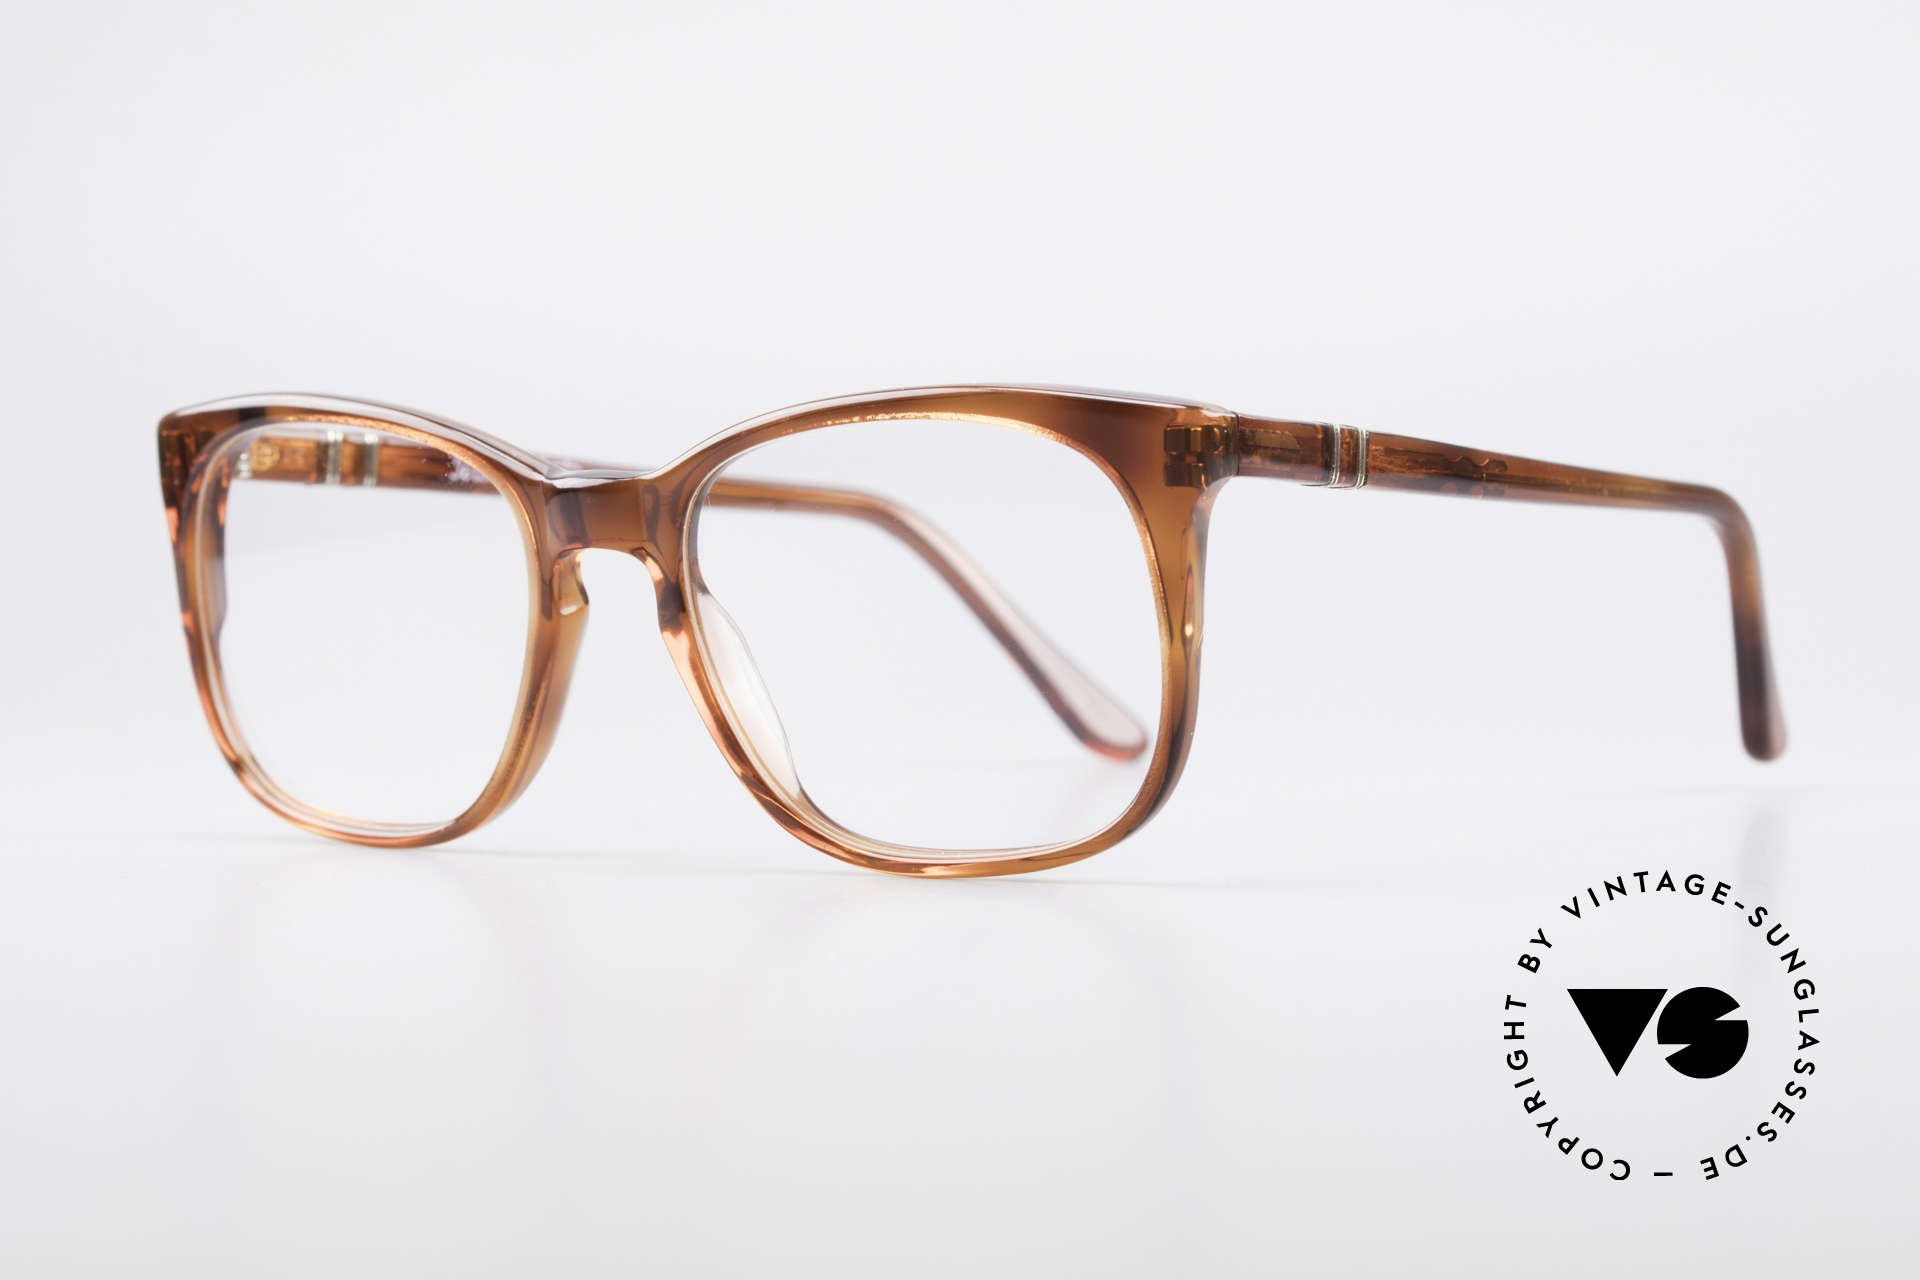 Persol 93145 Ratti Small Classic 80's Eyeglasses, best manufacturing (patented Meflecto System), Made for Men and Women